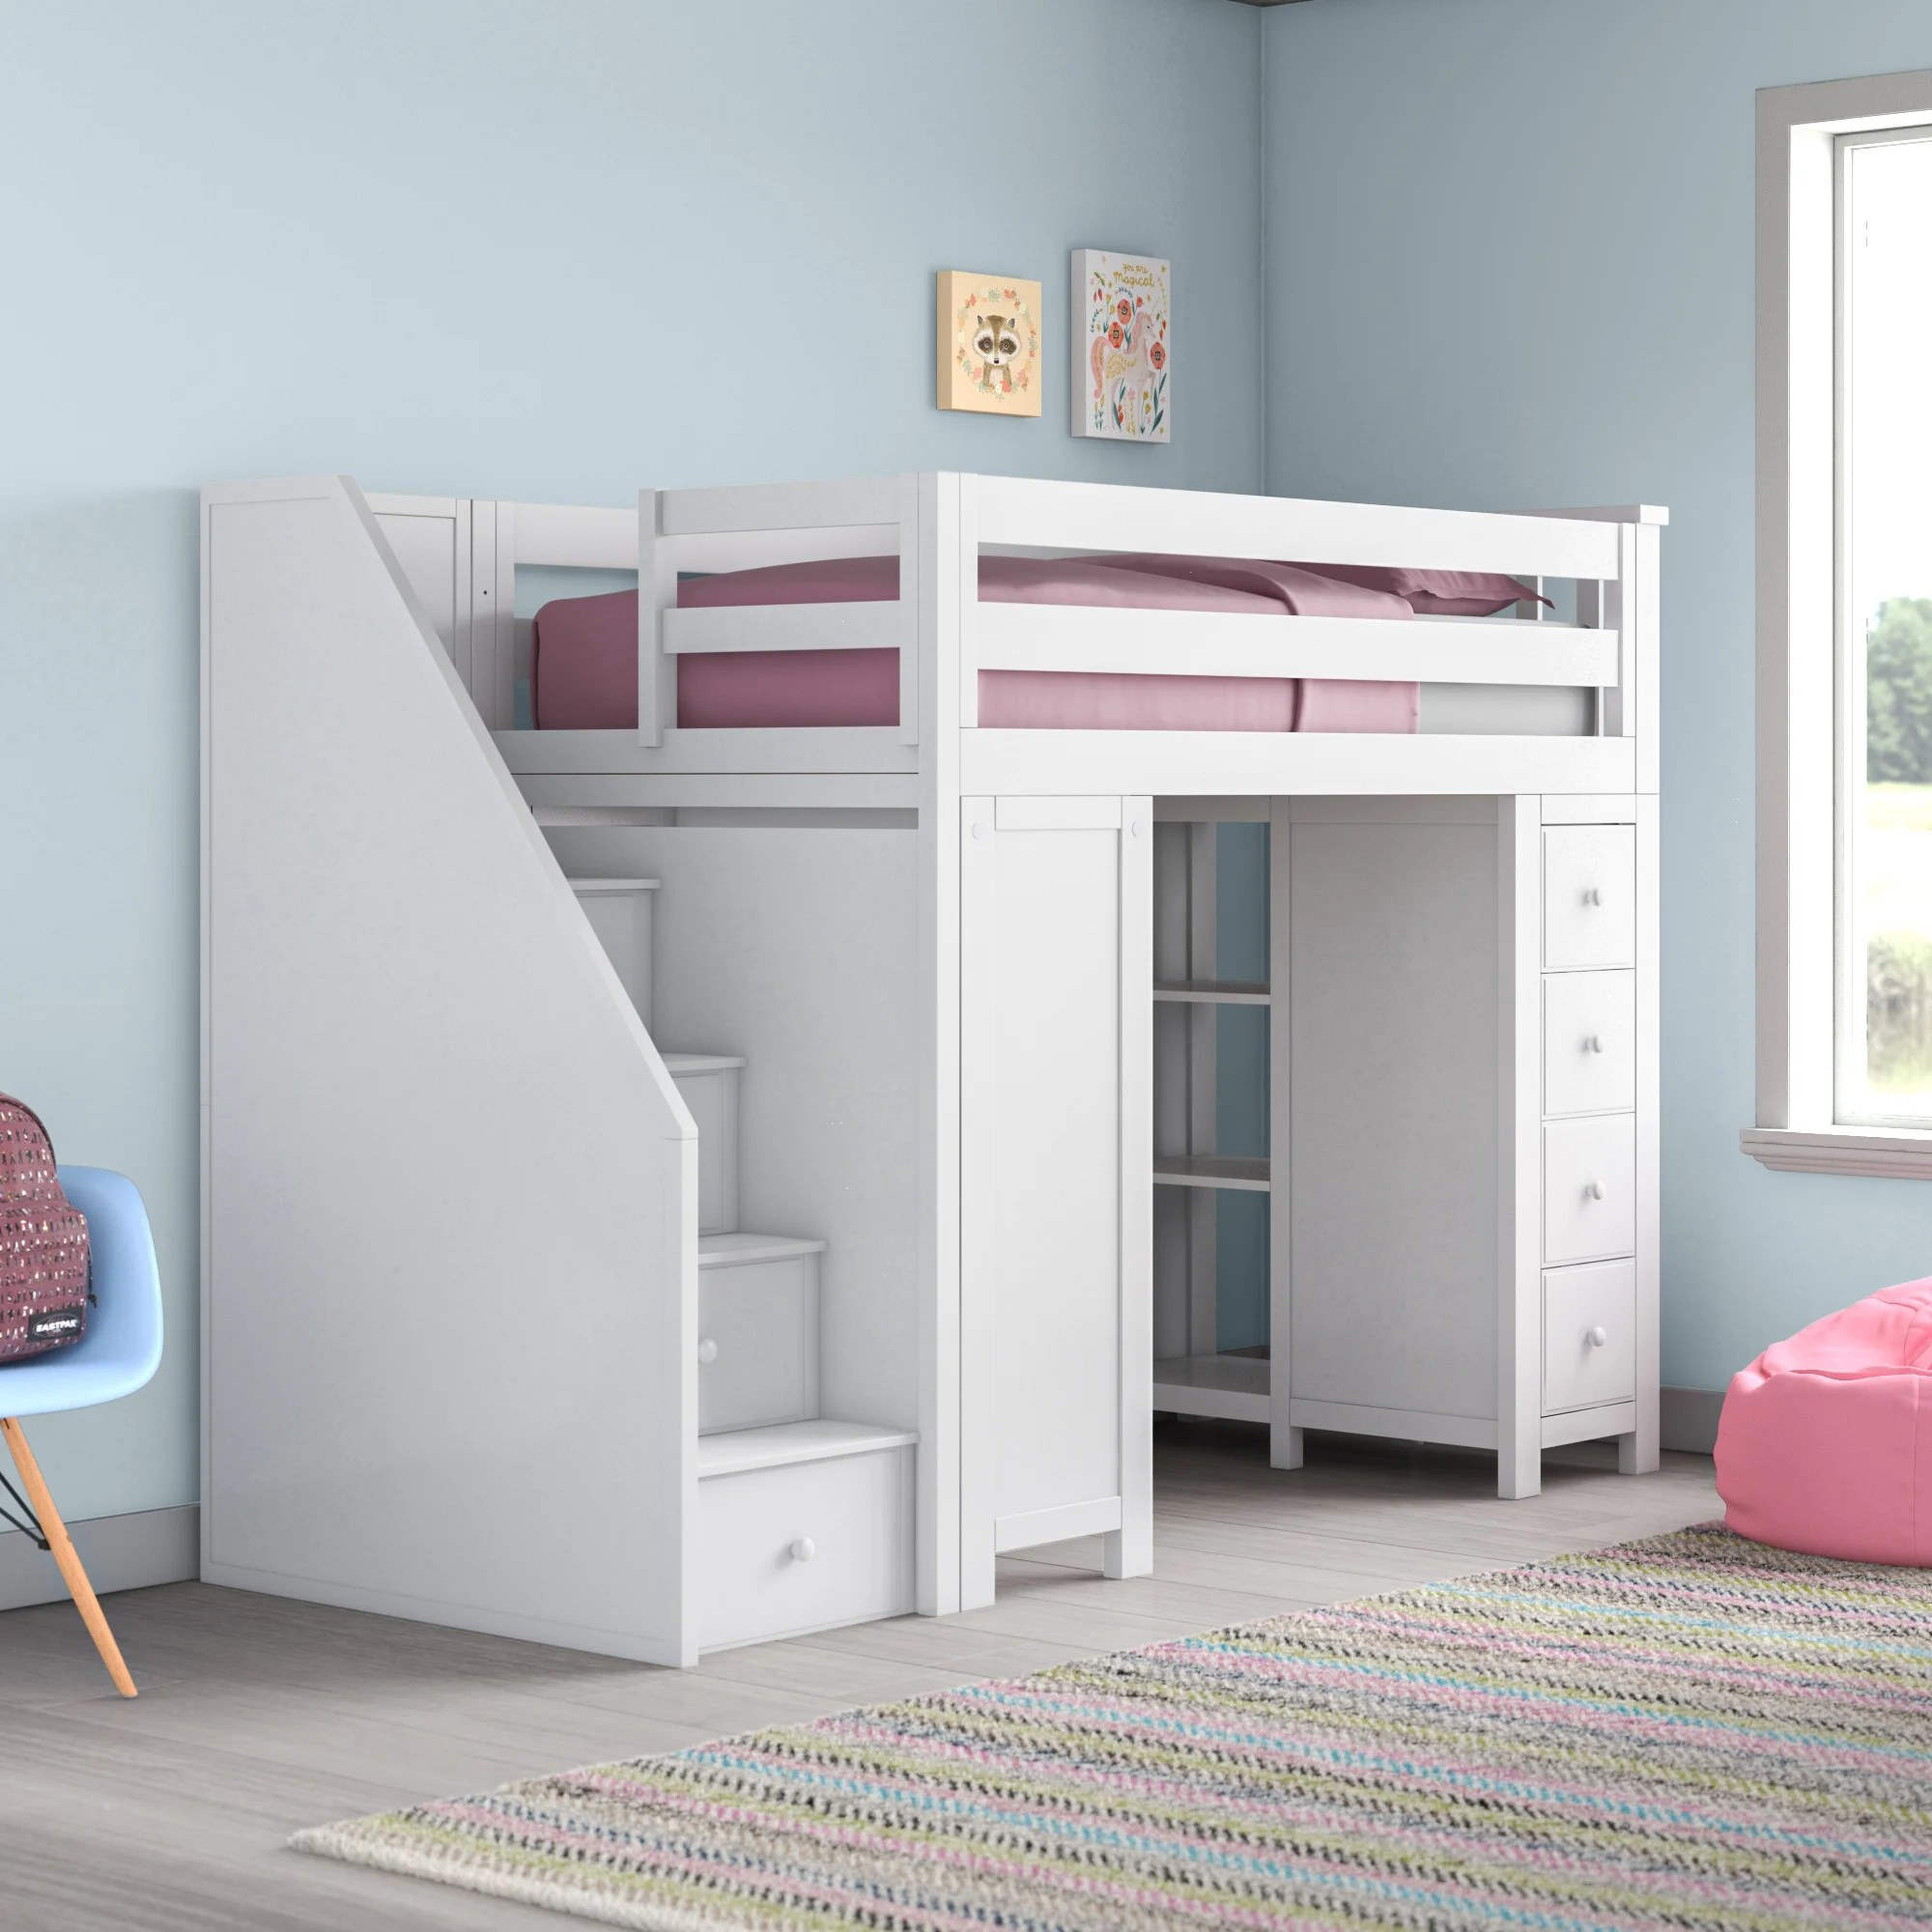 Harriet Bee Deshotel Twin Loft Bed With Drawers And Shelves Reviews